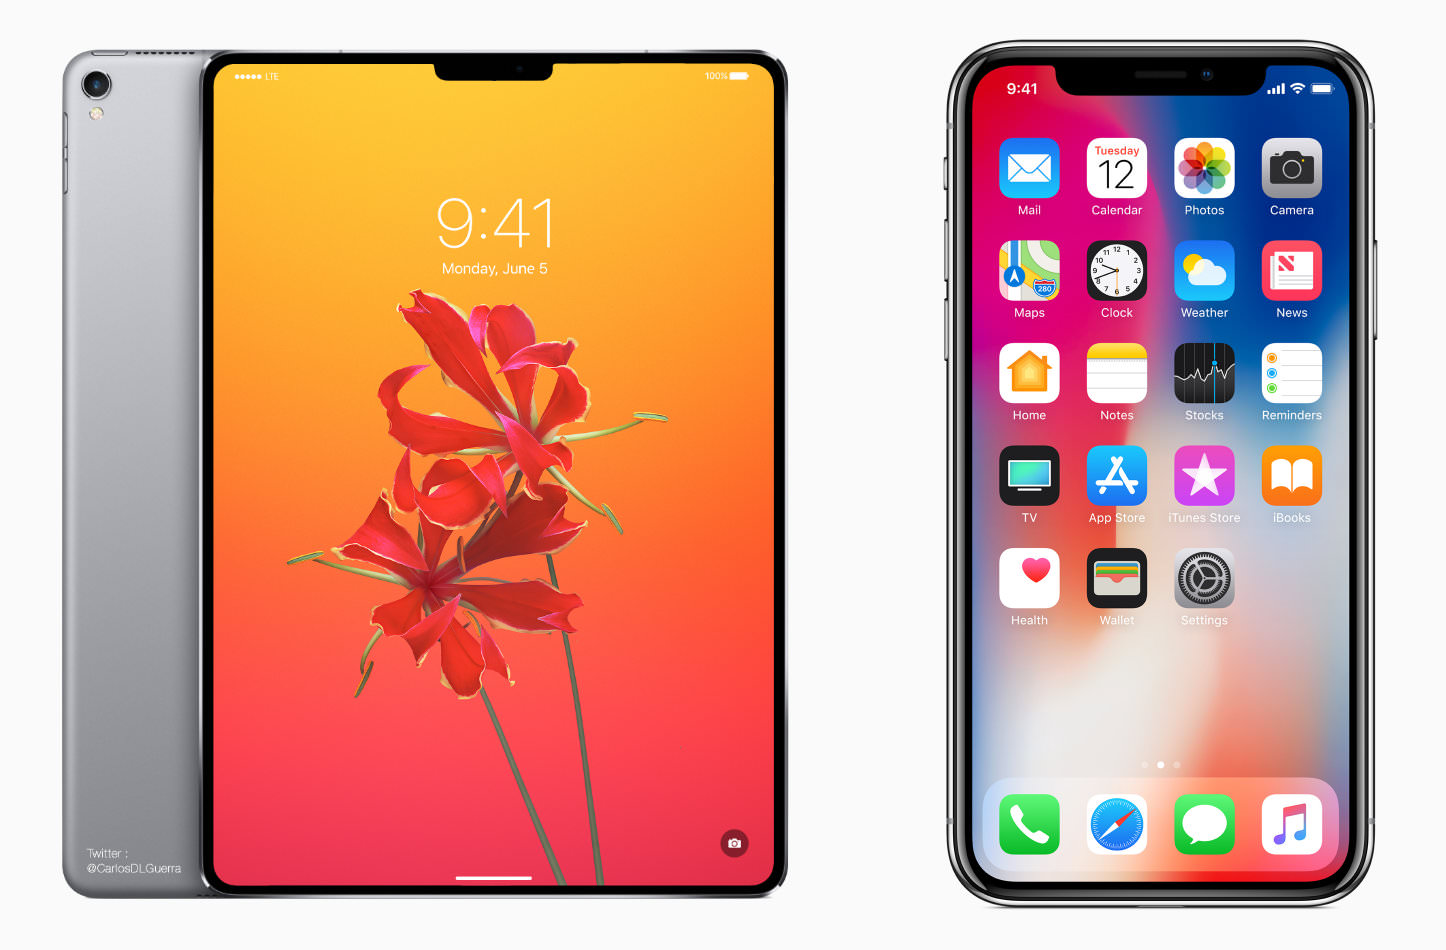 Iphone x and ipad pro x